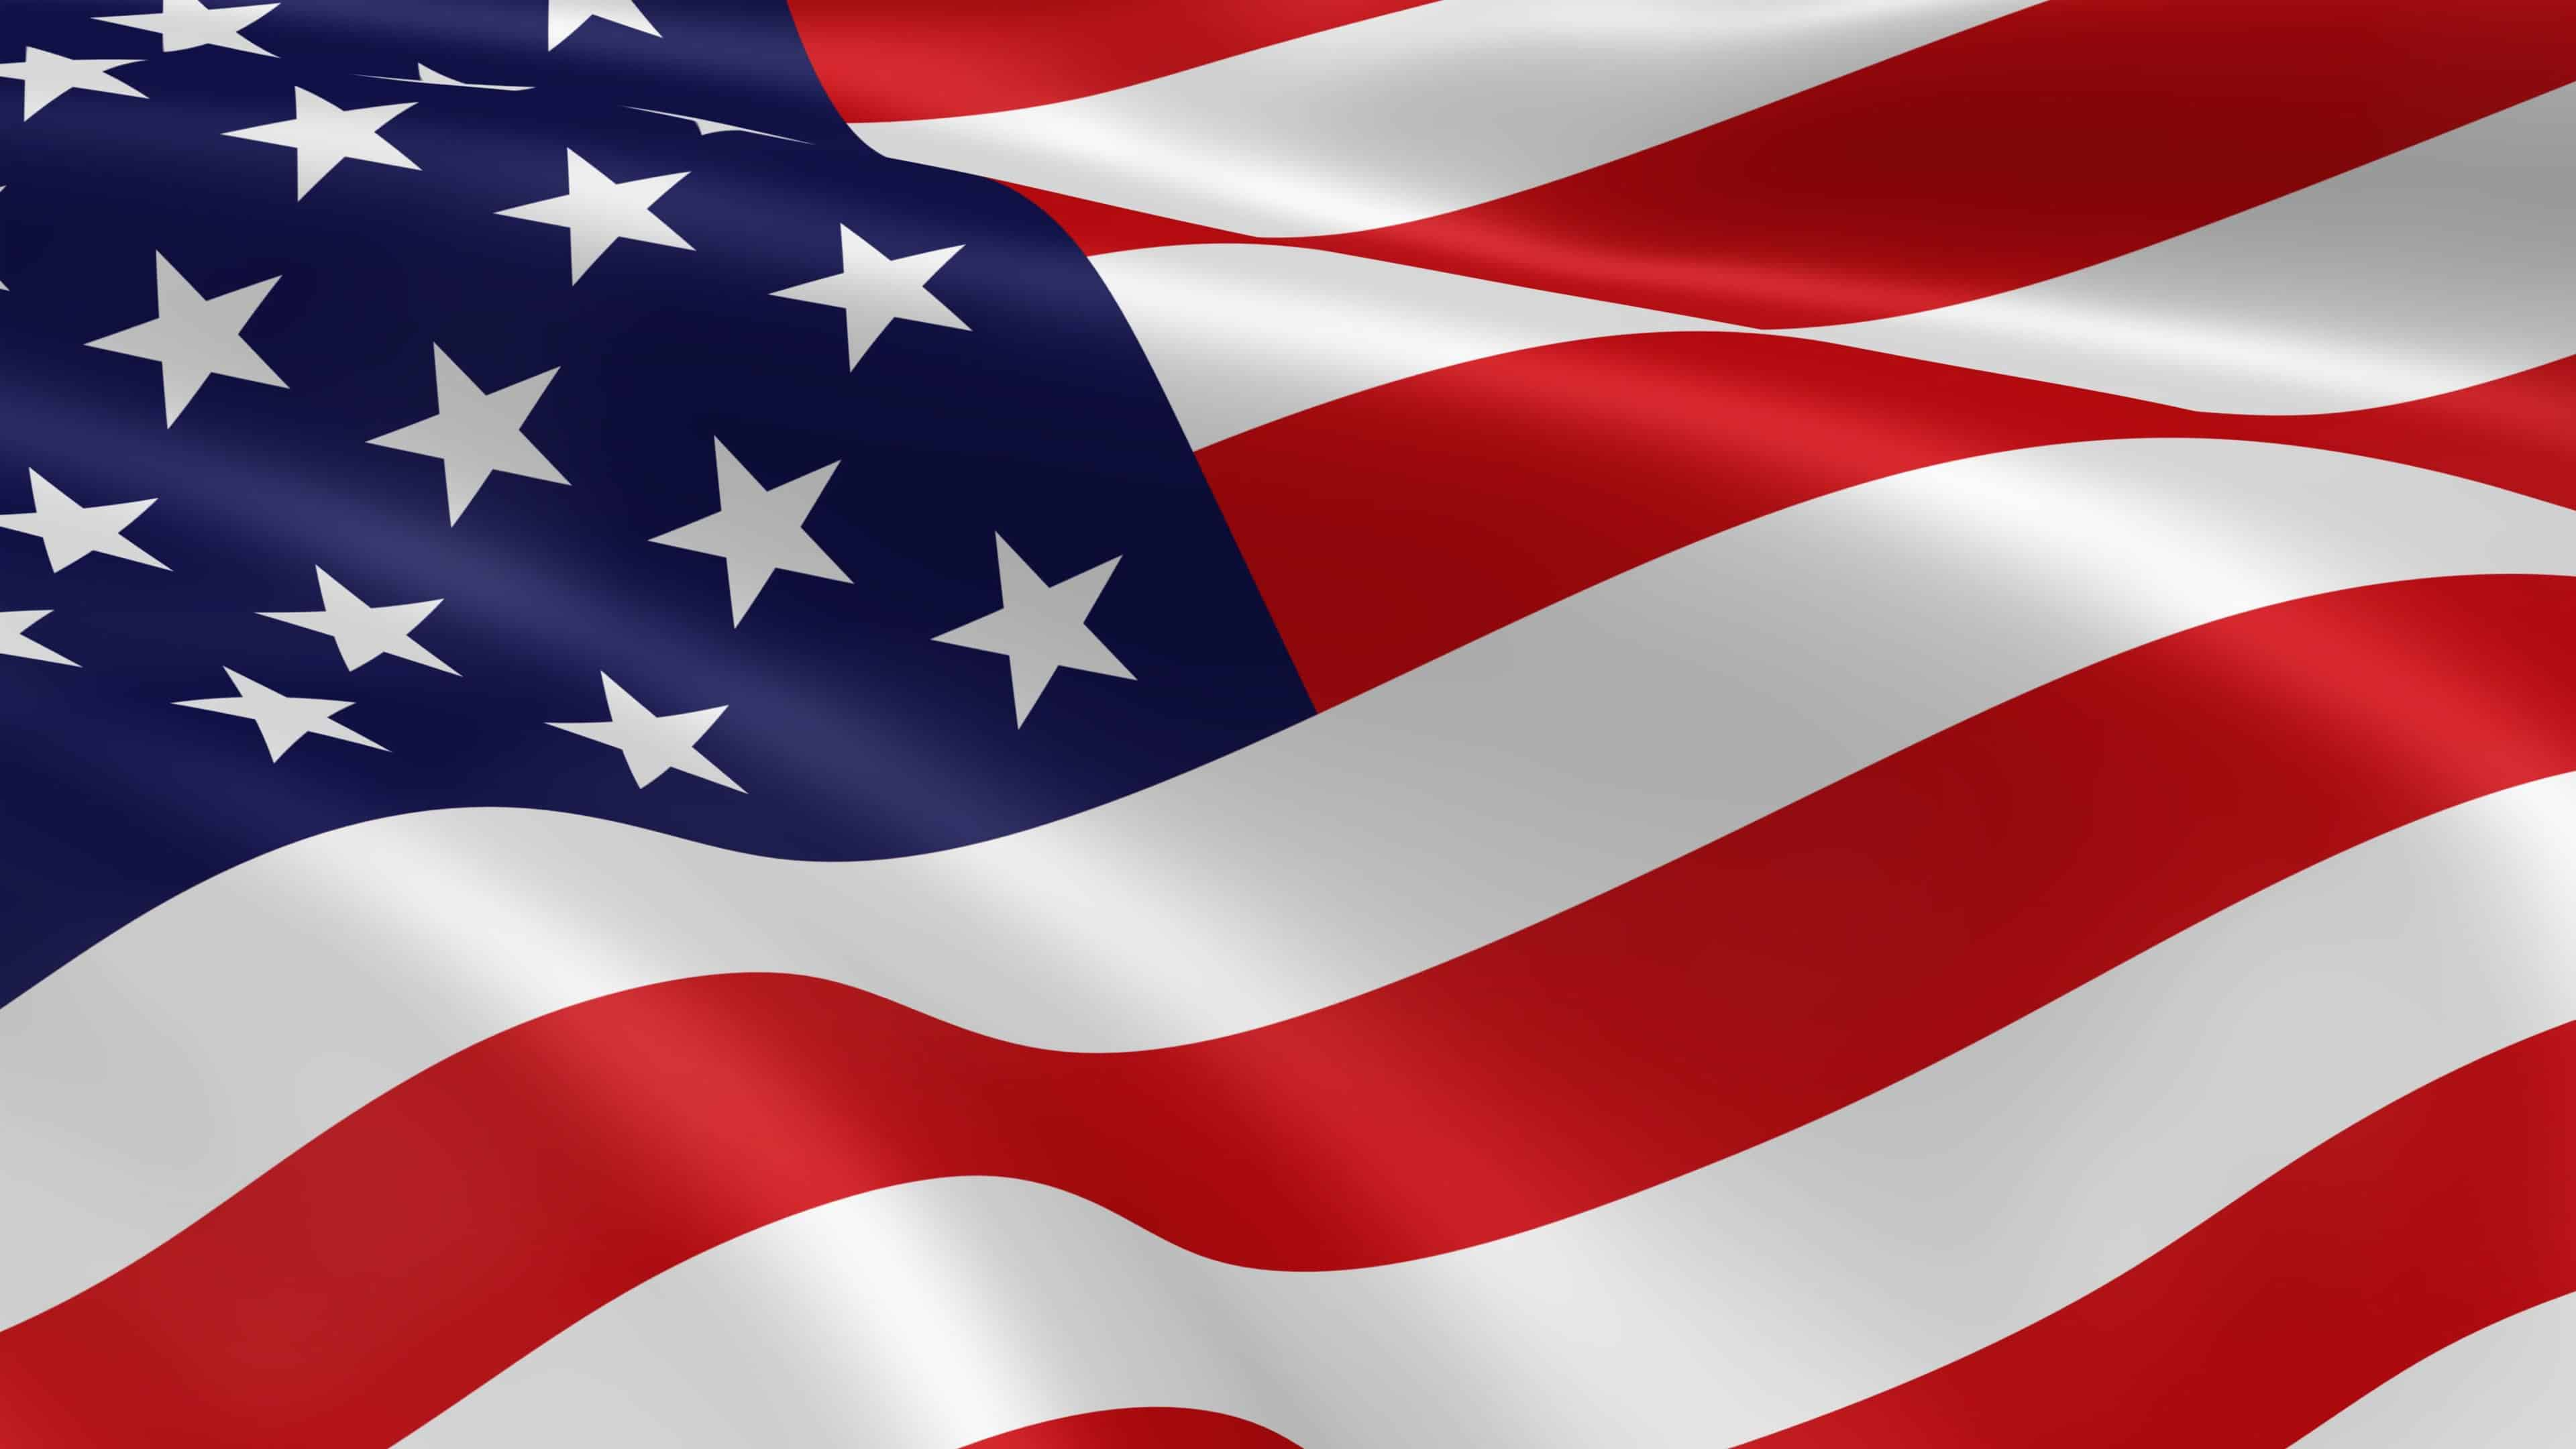 american flag uhd 4k wallpaper